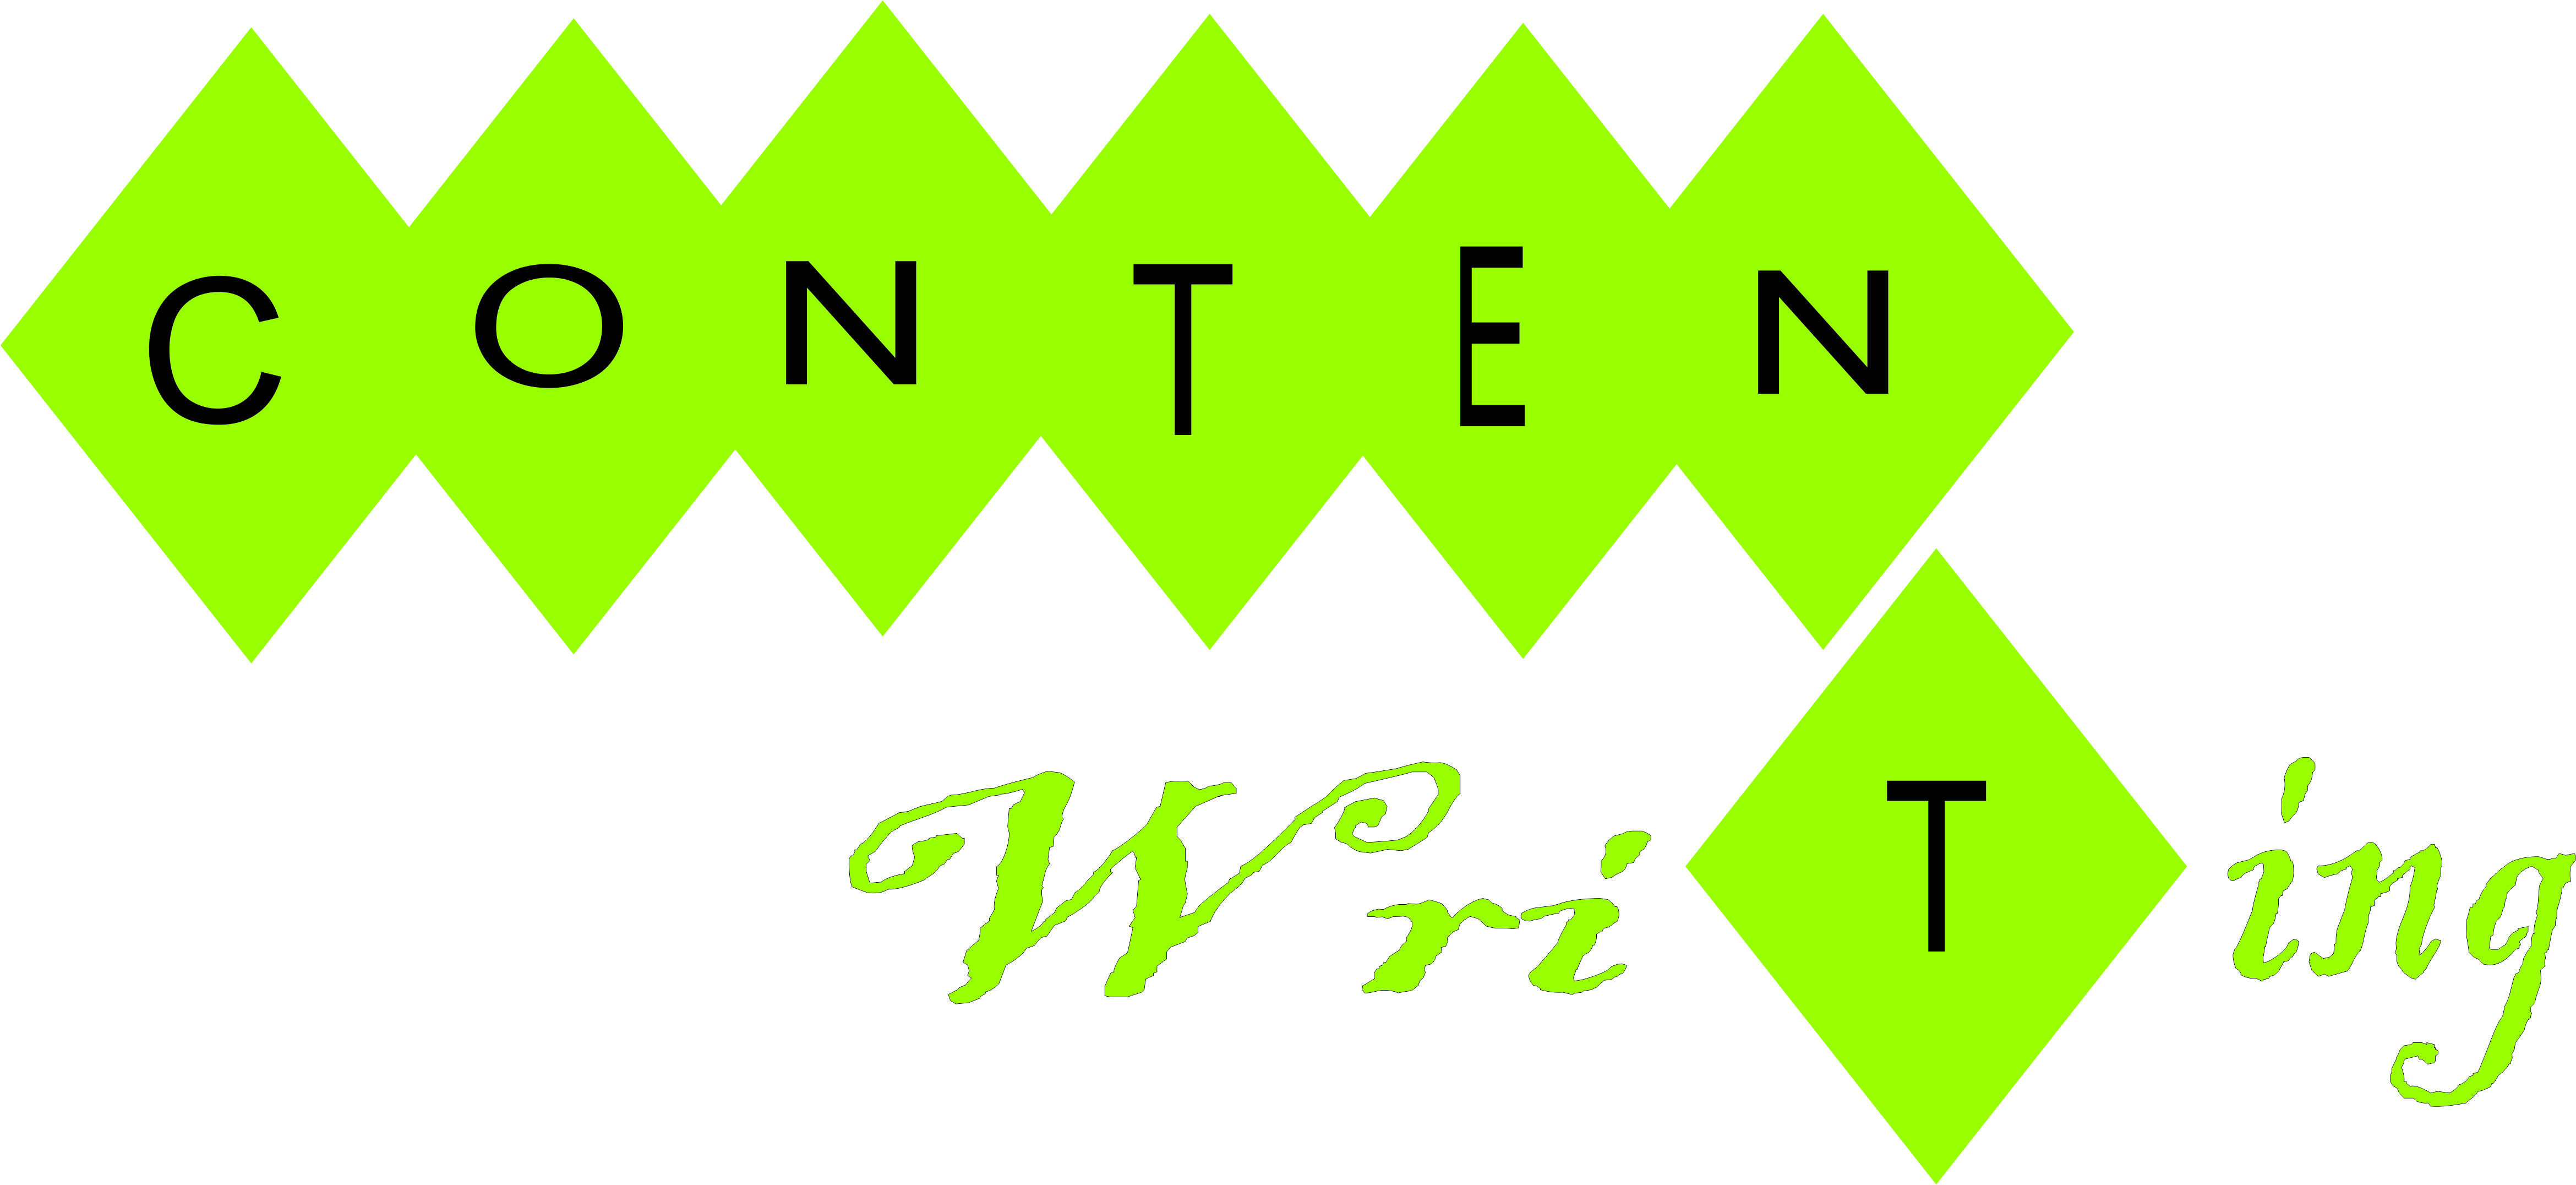 support you with writing your website content, blog, press release, article etc.